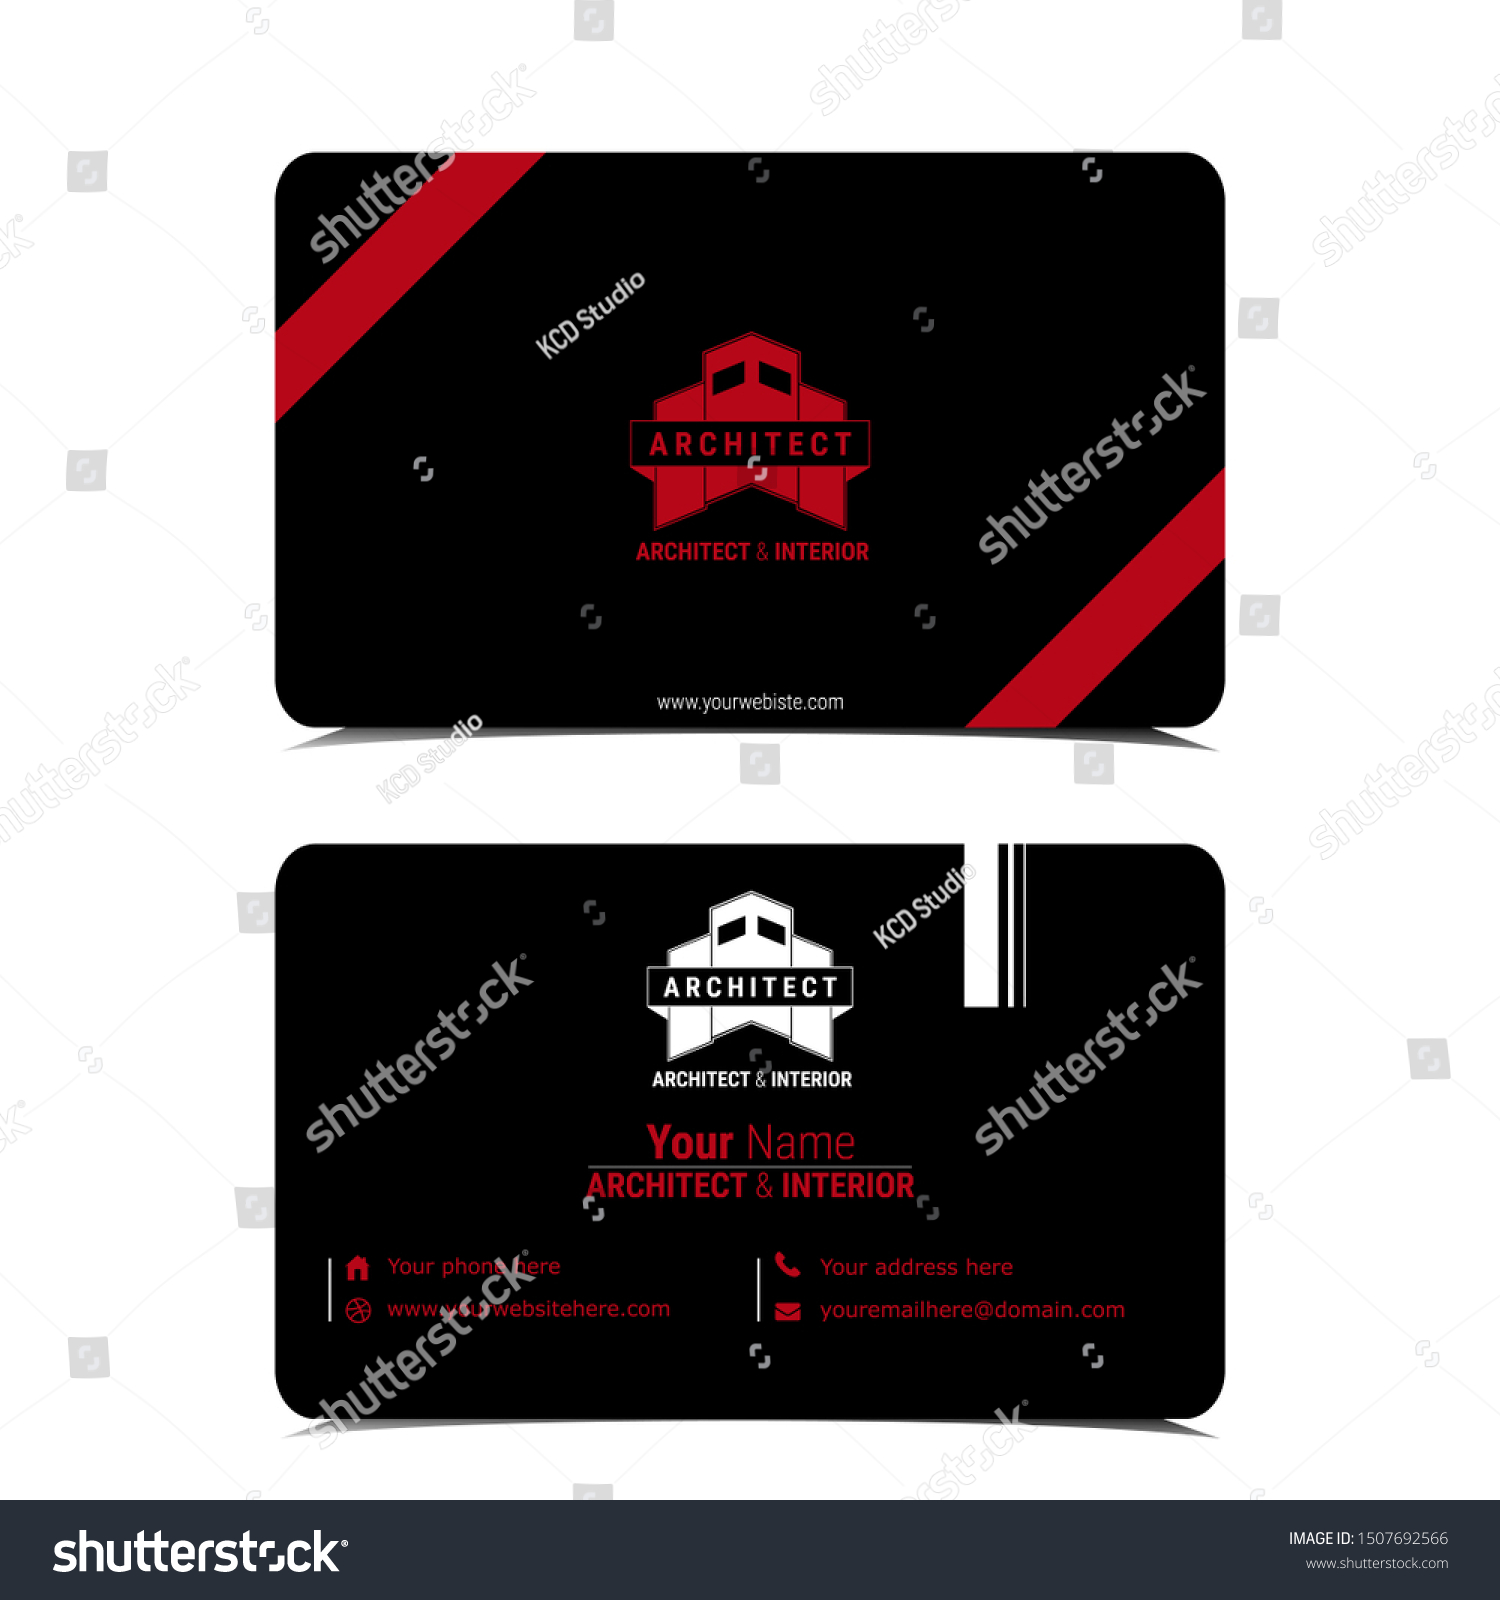 Modern Creative Business Card Template Architecture Stock Vector Royalty Free 1507692566